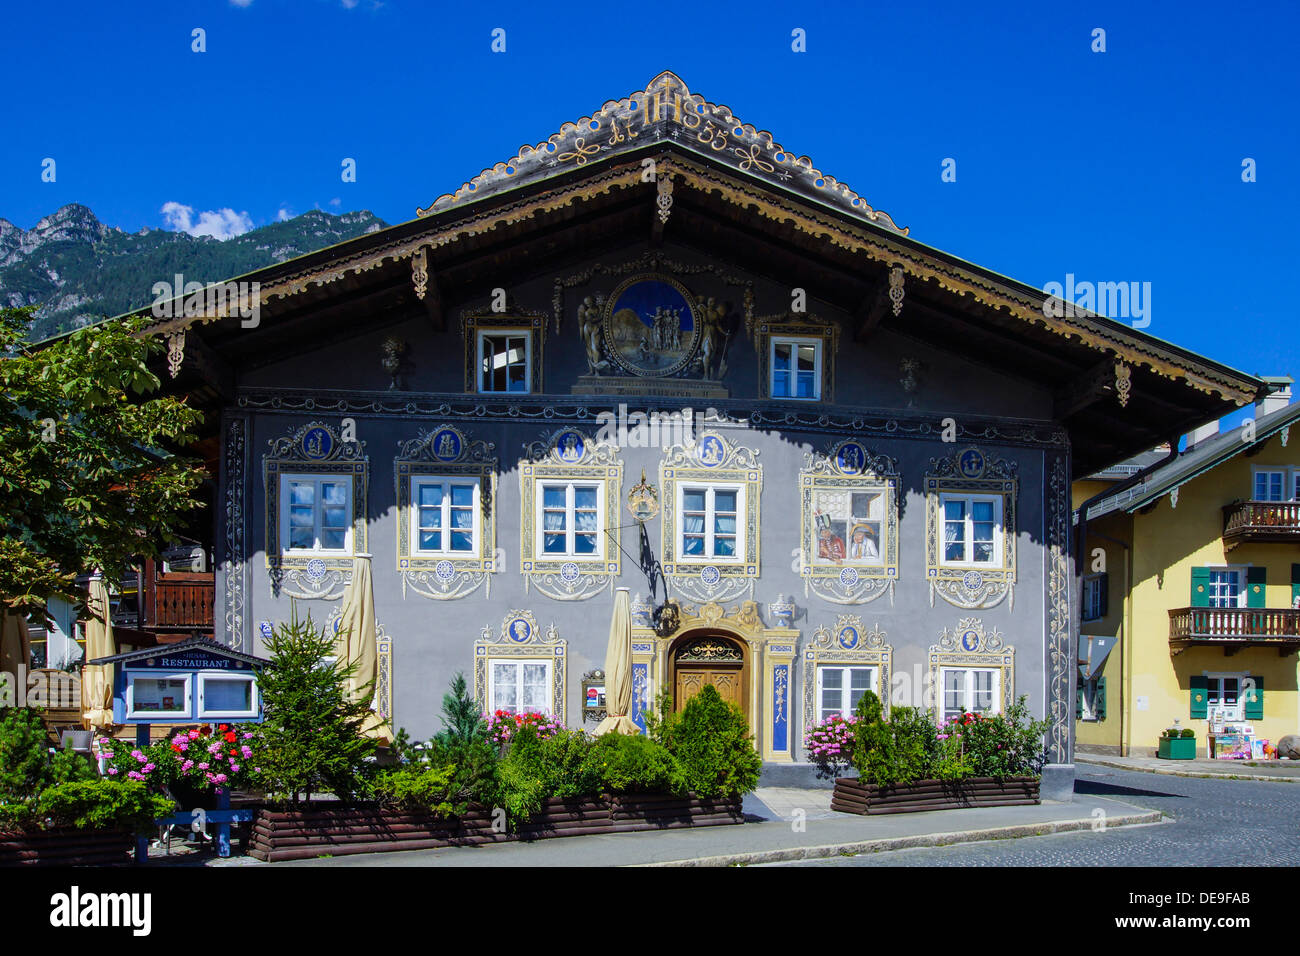 Garmisch-Partenkirchen, Garmisch, Partenkirchen, The Inn Husar, Werdenfels, Bavaria, Upper Bavaria, Germany - Stock Image